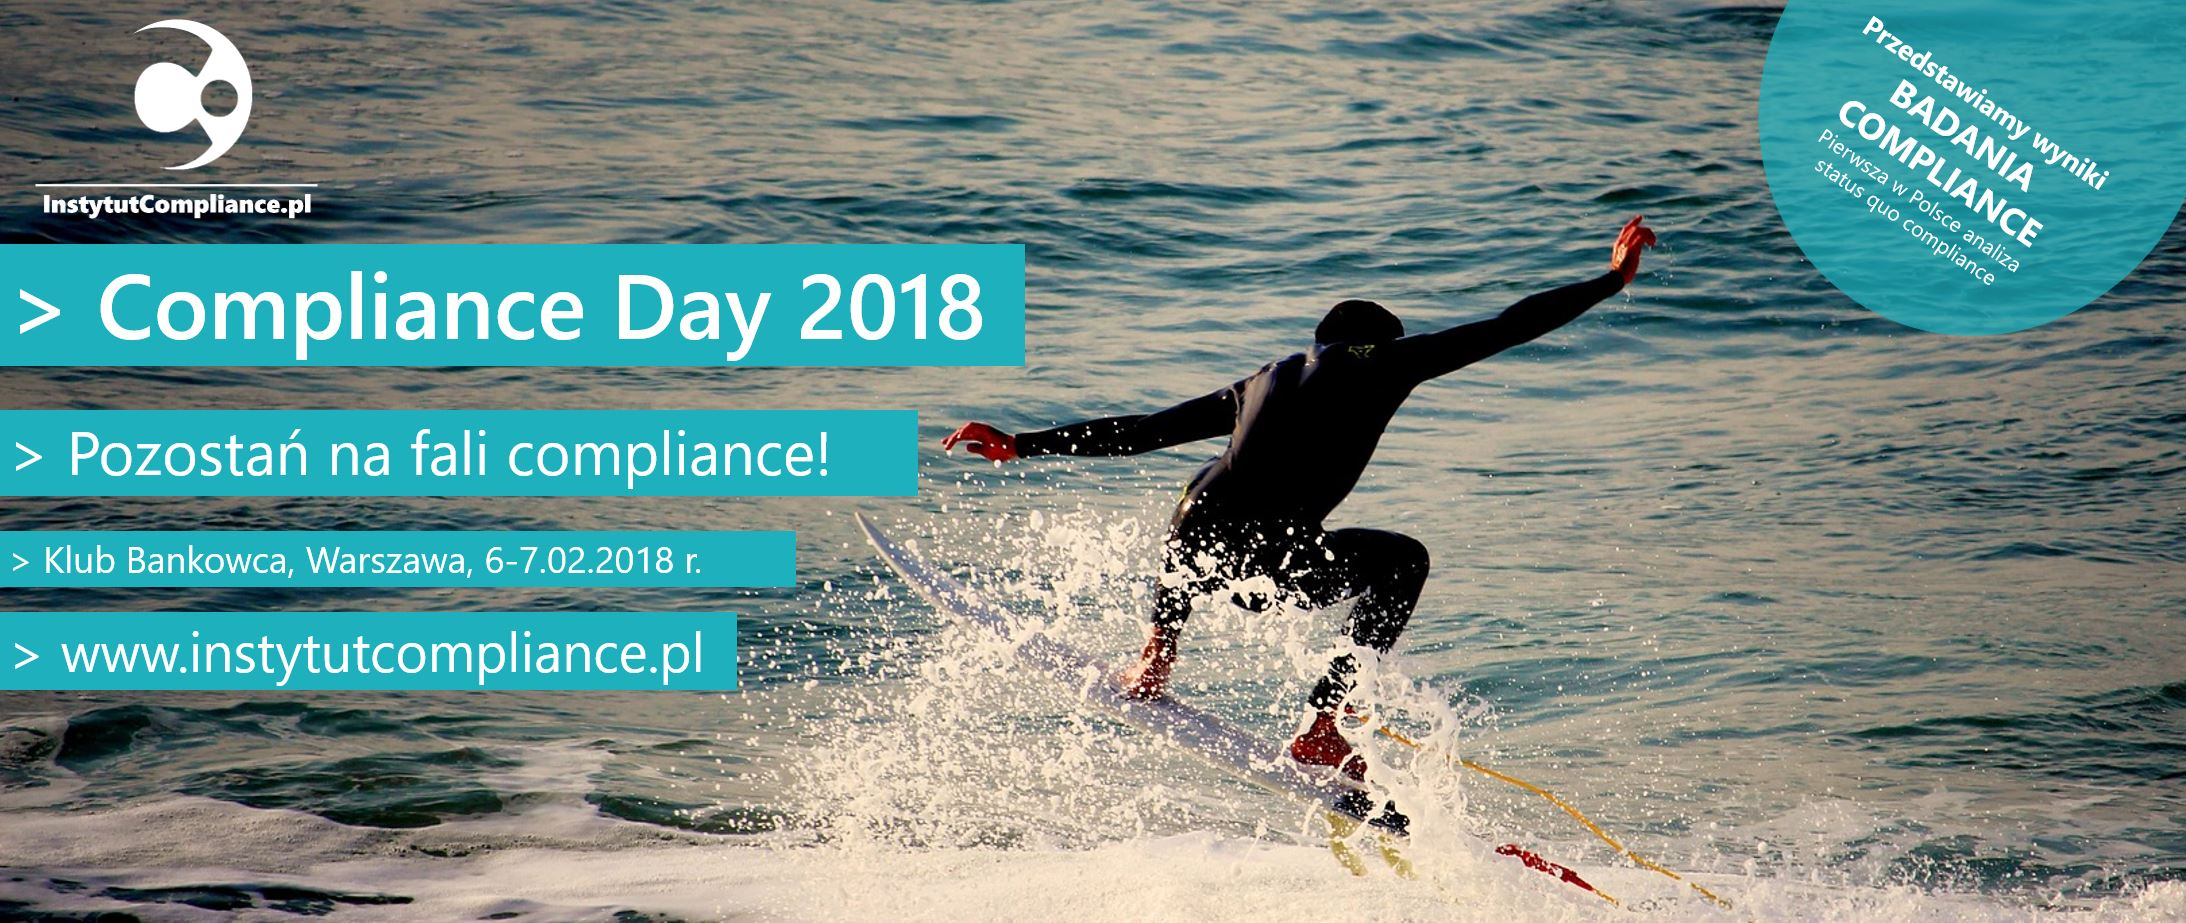 Compliance Day 2018